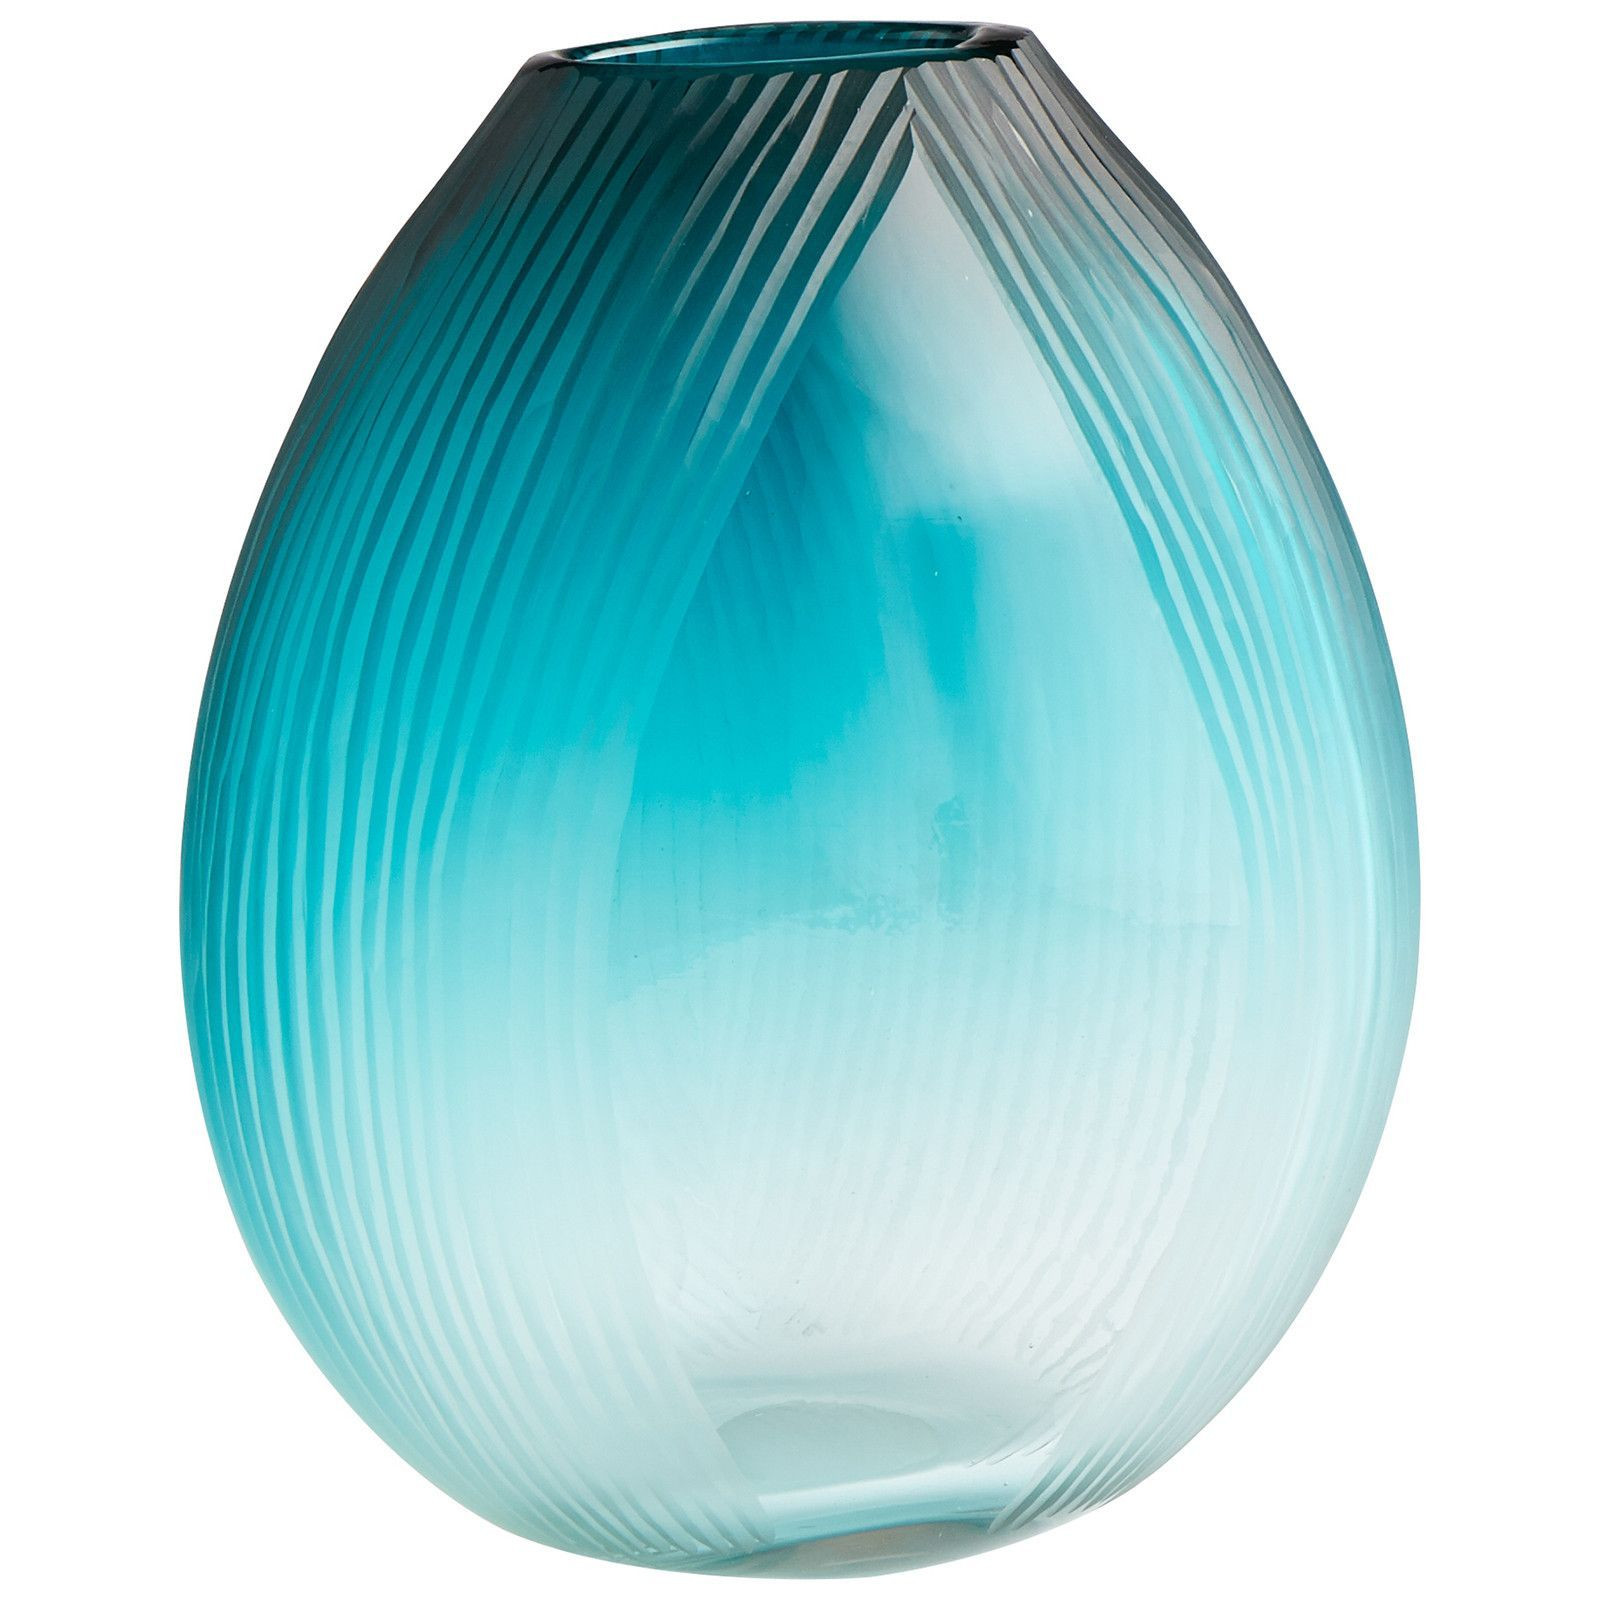 Cyan Design Bora Vase Of Cafa Etched Vase In Brown and Smoke Products Pertaining to 4e313785b6c2a56c87a3ae0095349a7f